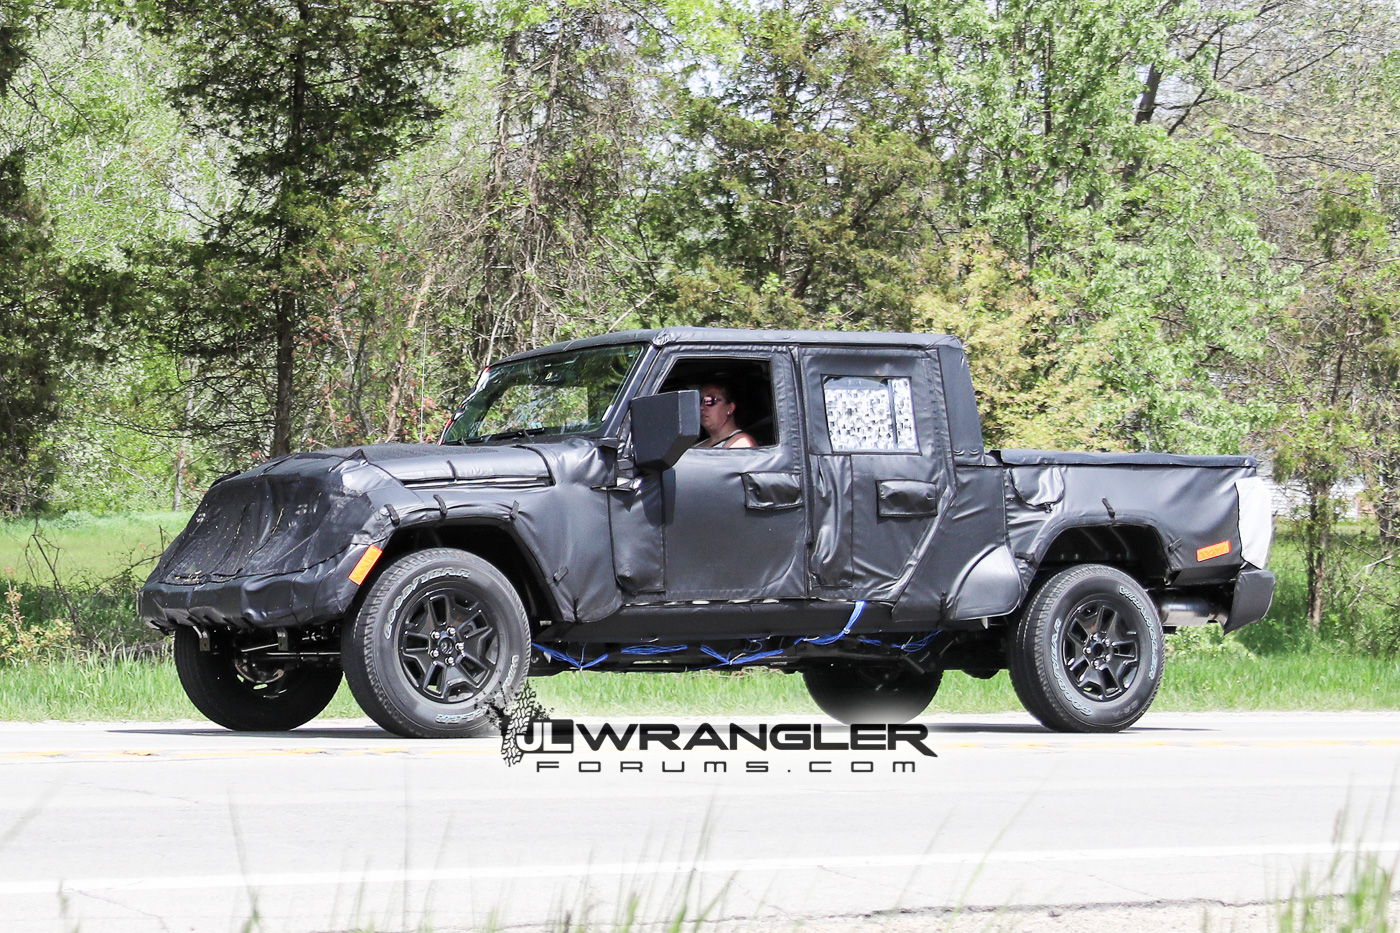 Jeep Wrangler Pickup Truck 2017 >> JT Wrangler Truck Testing on Public Roads, Shows Spare Tire Mount | 2018+ Jeep Wrangler Forums ...